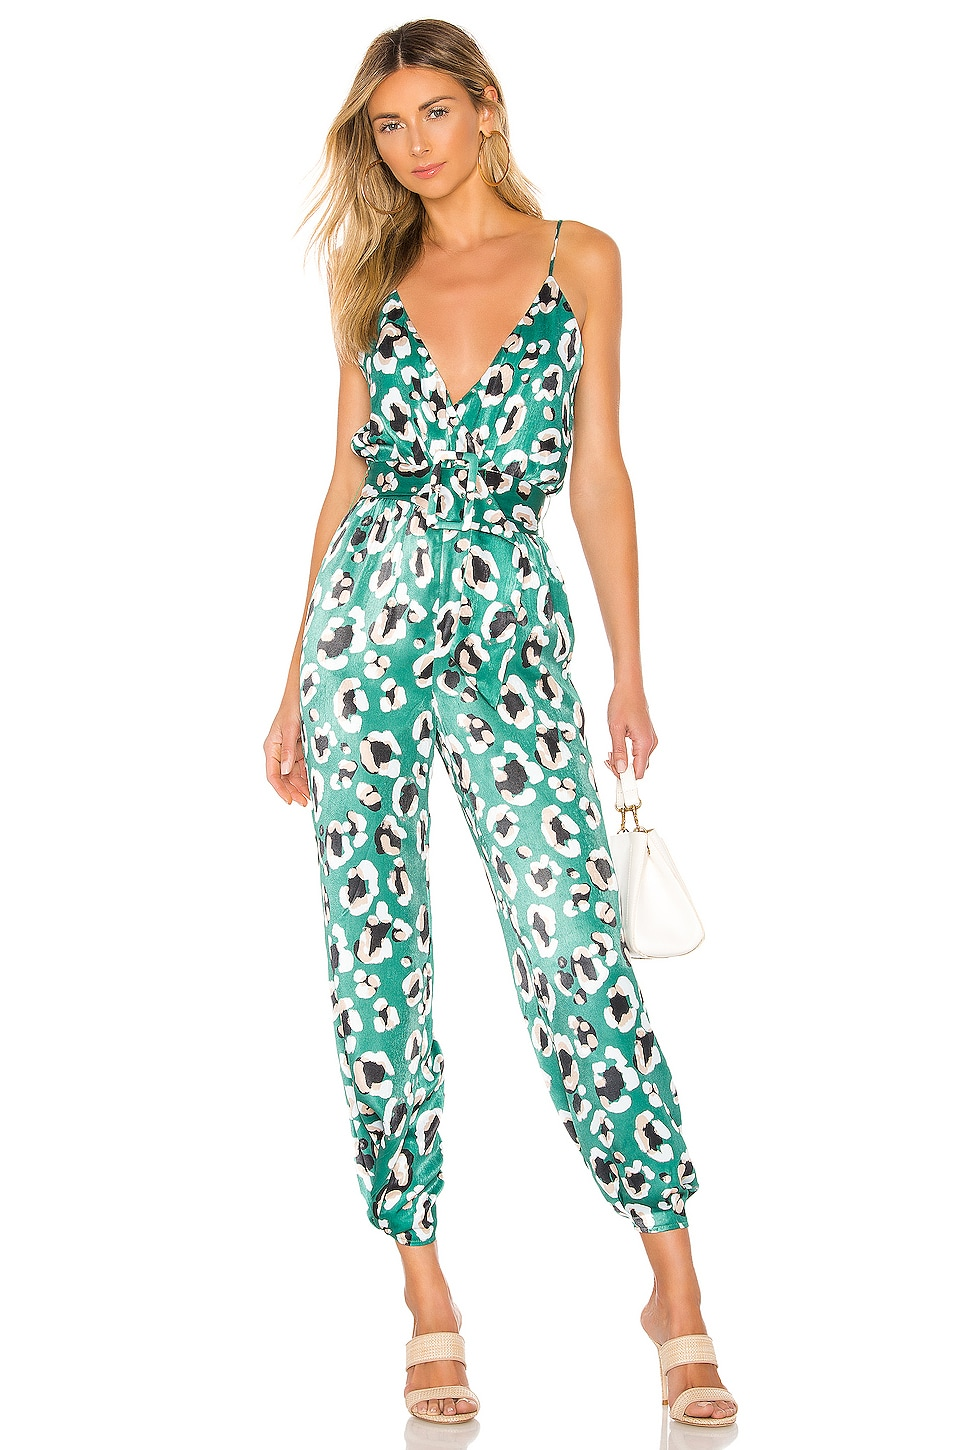 House of Harlow 1960 x REVOLVE Rudy Jumpsuit in Green Leopard